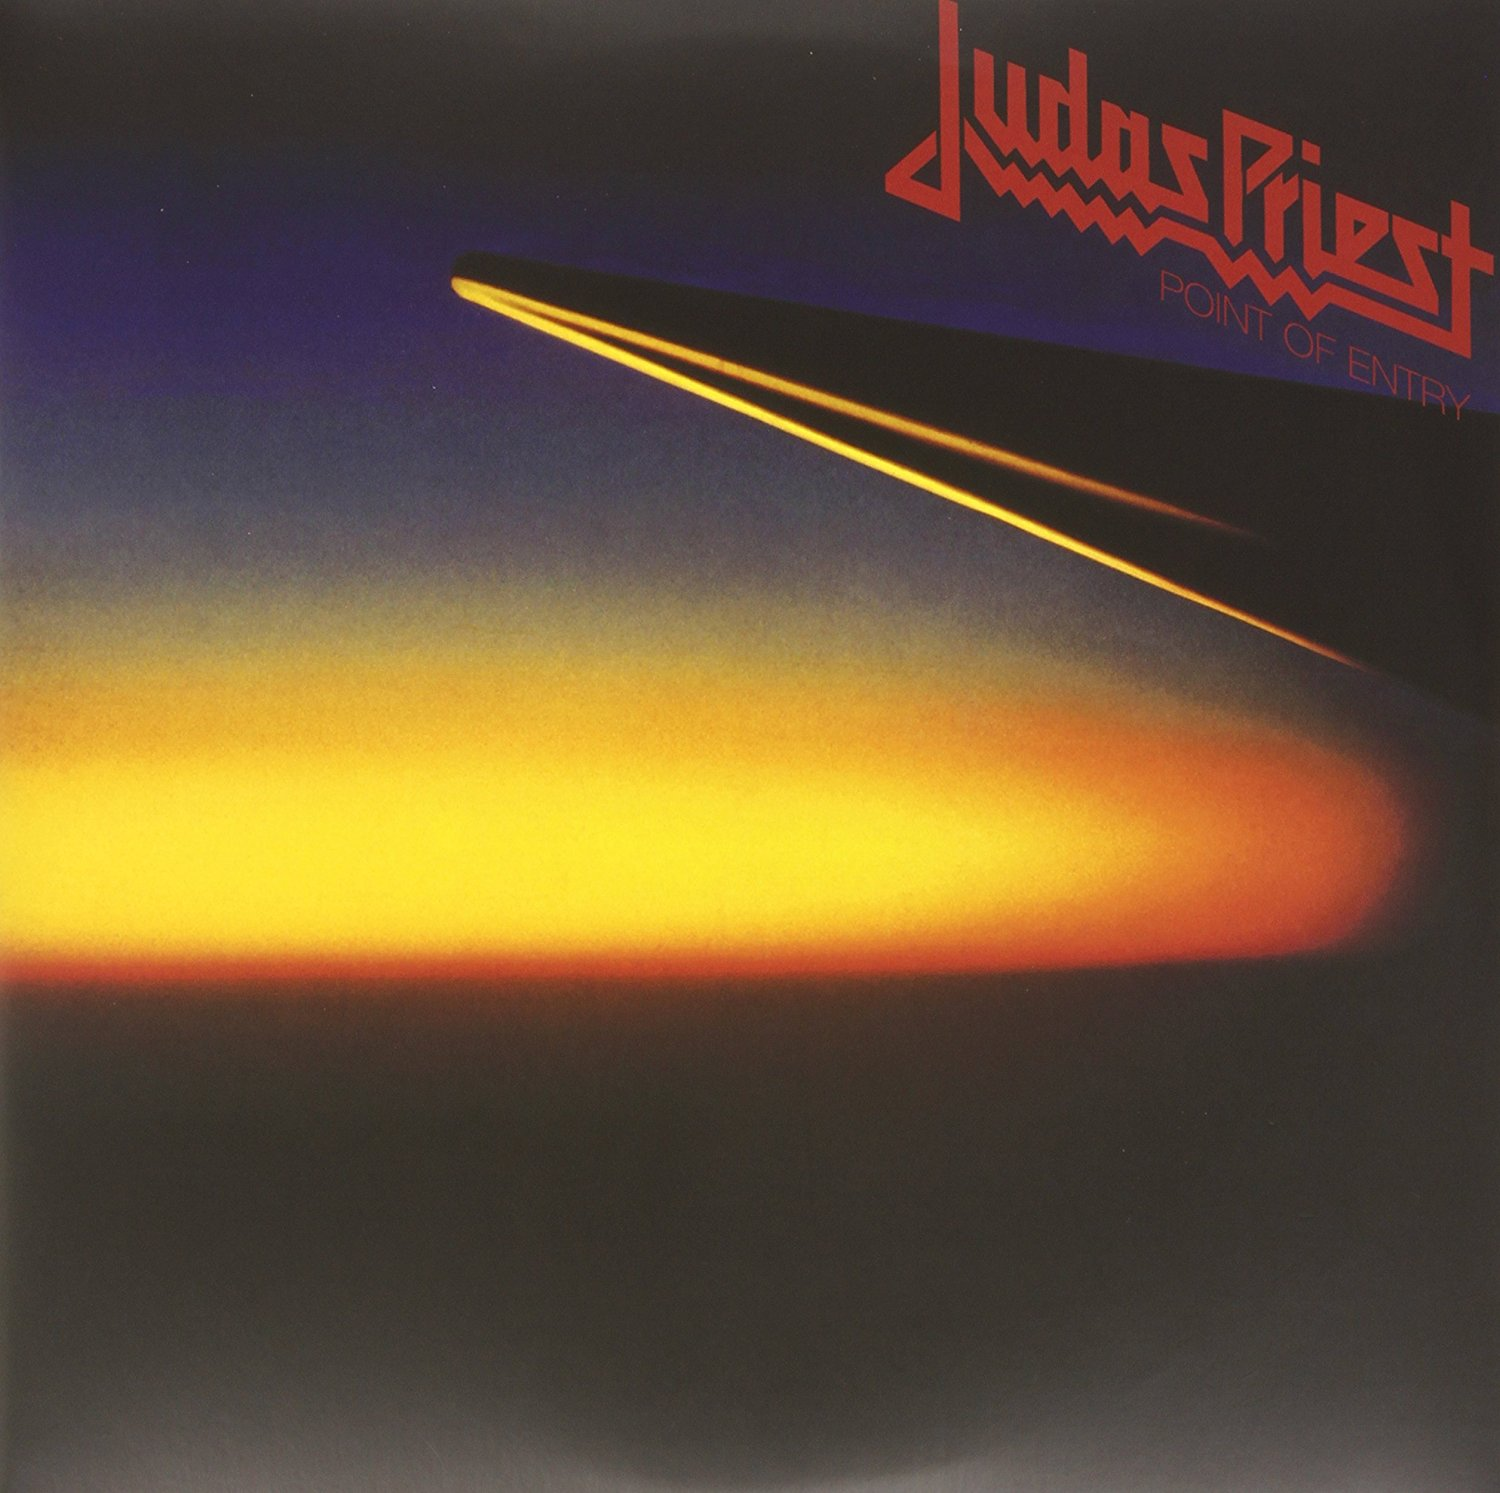 Judas Priest - Point Of Entry [LP]